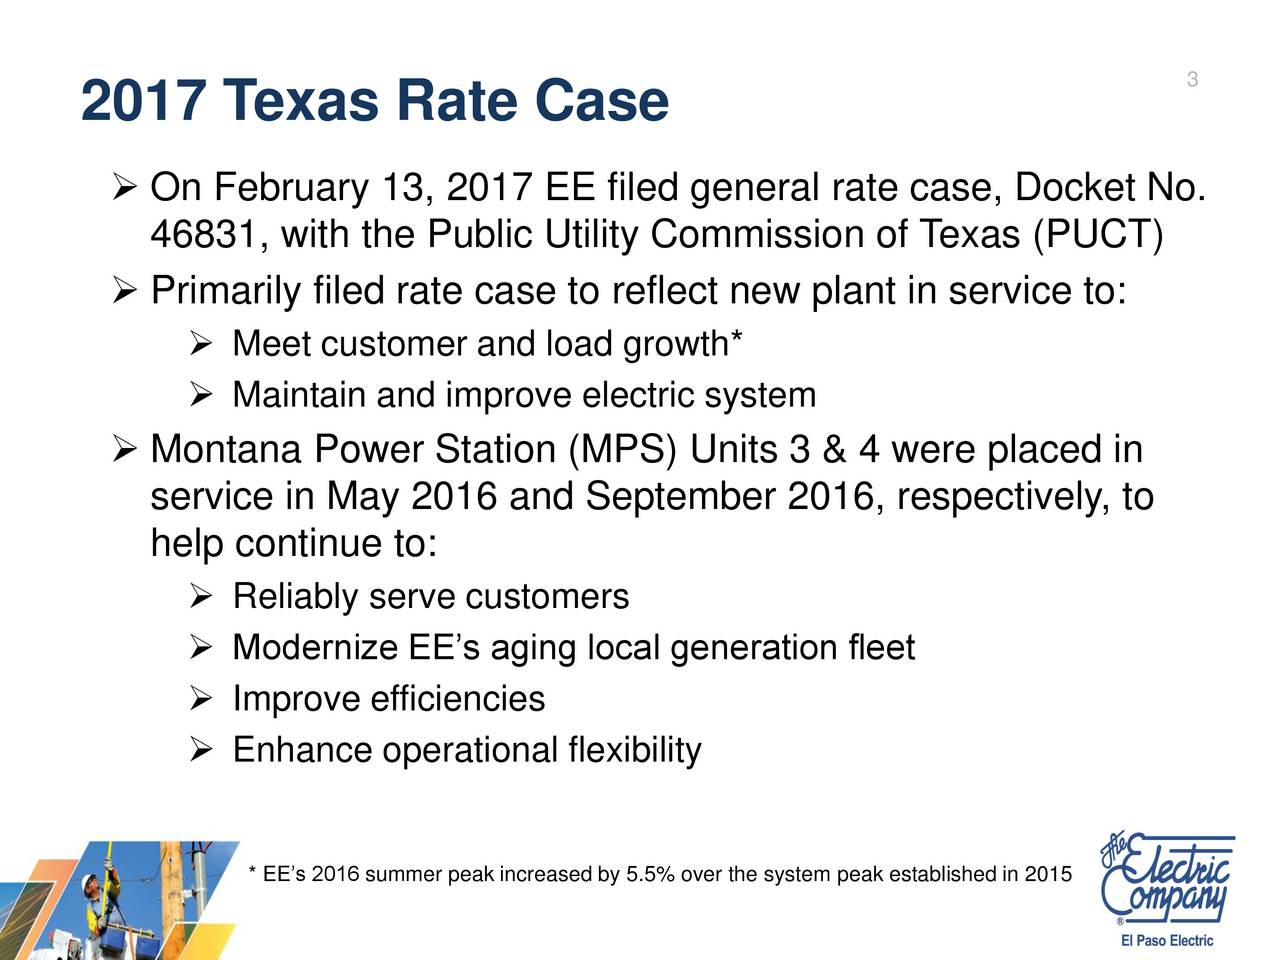 2017 Texas Rate Case On February 13, 2017 EE filed general rate case, Docket No. 46831, with the Public Utility Commission of Texas (PUCT) Primarily filed rate case to reflect new plant in service to: Meet customer and load growth* Maintain and improve electric system Montana Power Station (MPS) Units 3 & 4 were placed in service in May 2016 and September 2016, respectively, to help continue to: Reliably serve customers Modernize EEs aging local generation fleet Improve efficiencies Enhance operational flexibility * EEs 2016 summer peak increased by 5.5% over the system peak established in 2015